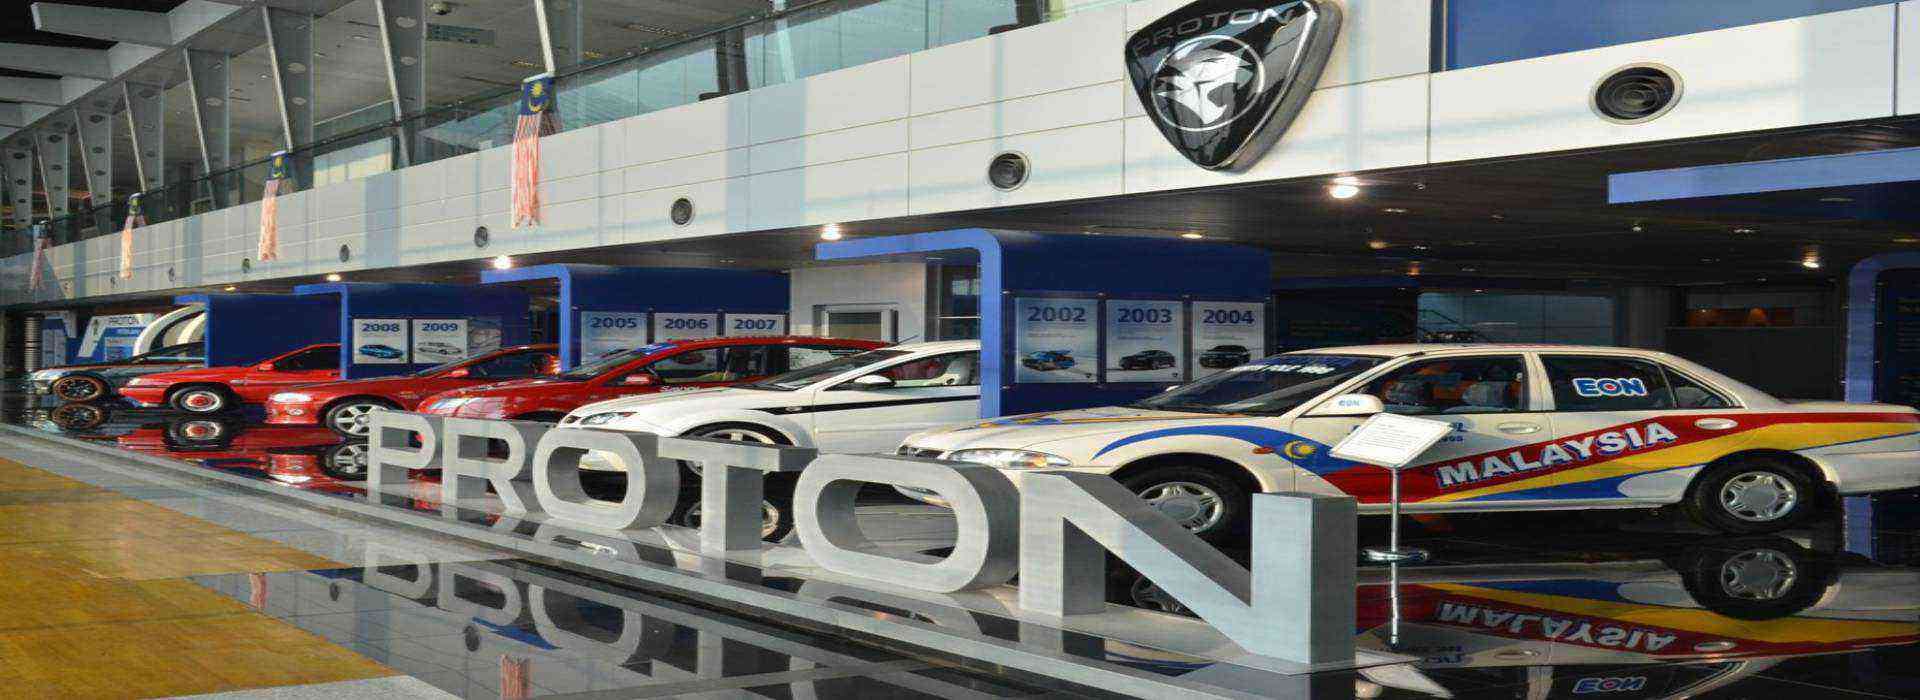 Proton Customer Service Malaysia Number, Head Office Address